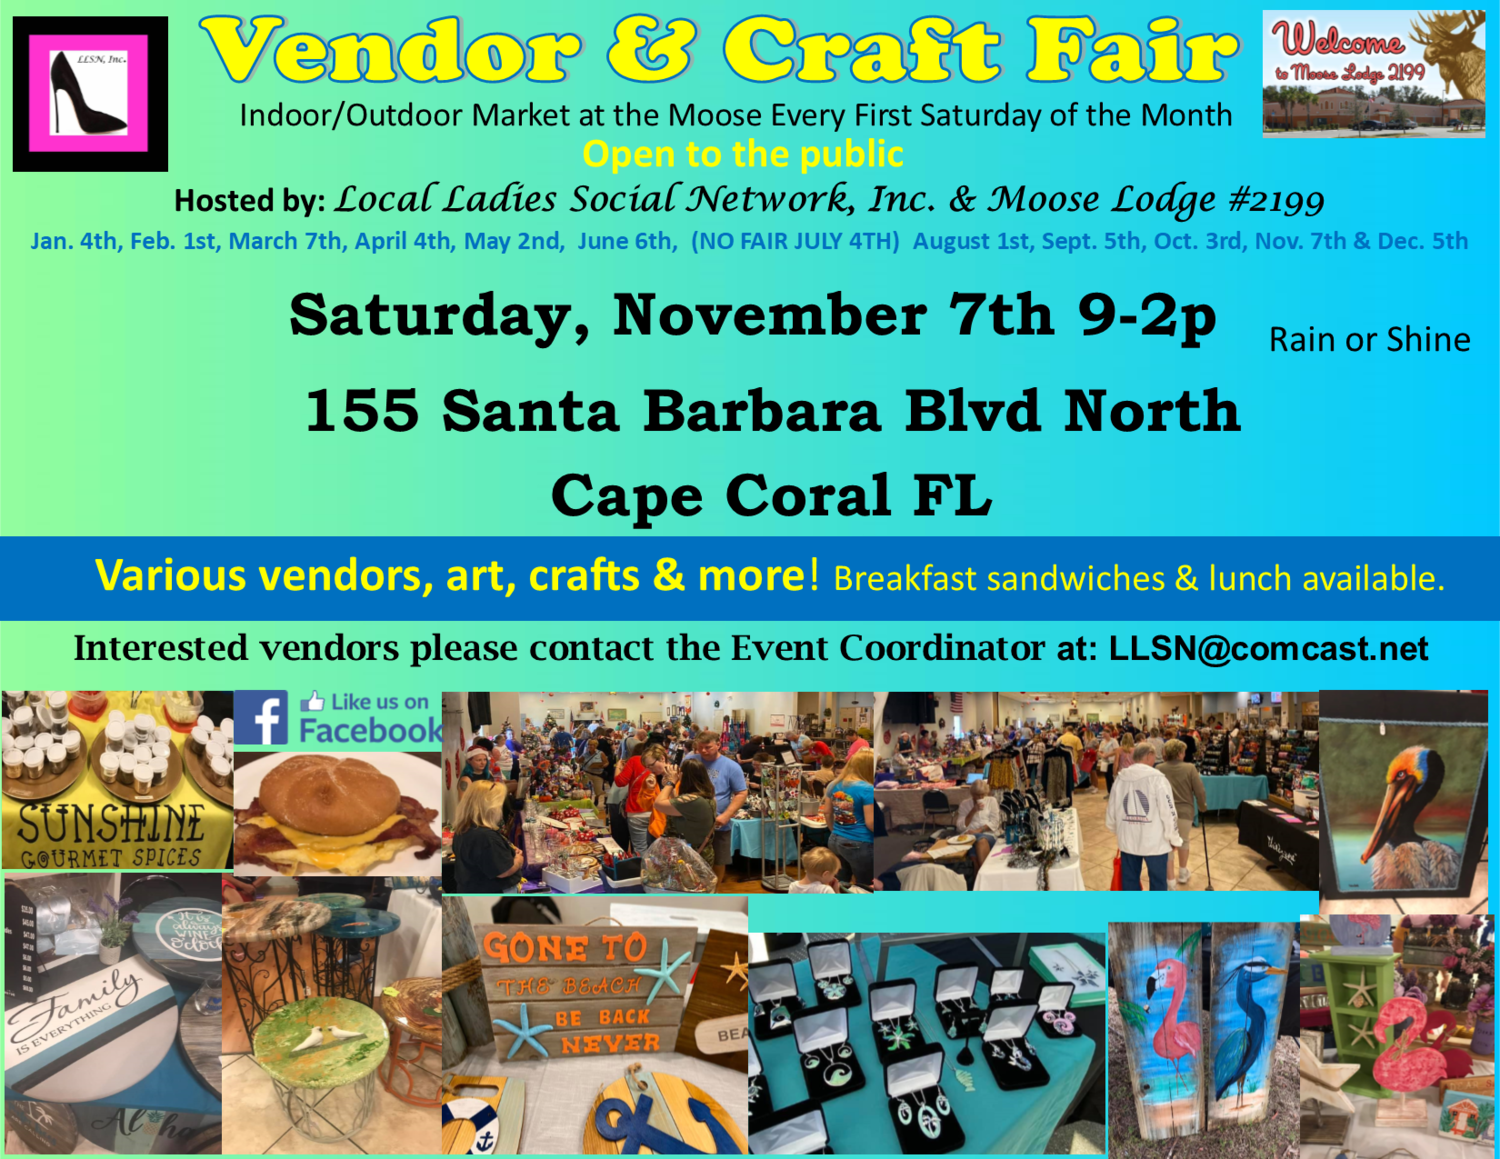 Vendor & Craft Fair- November 7th  OUTSIDE SPOT- (10x10 area)